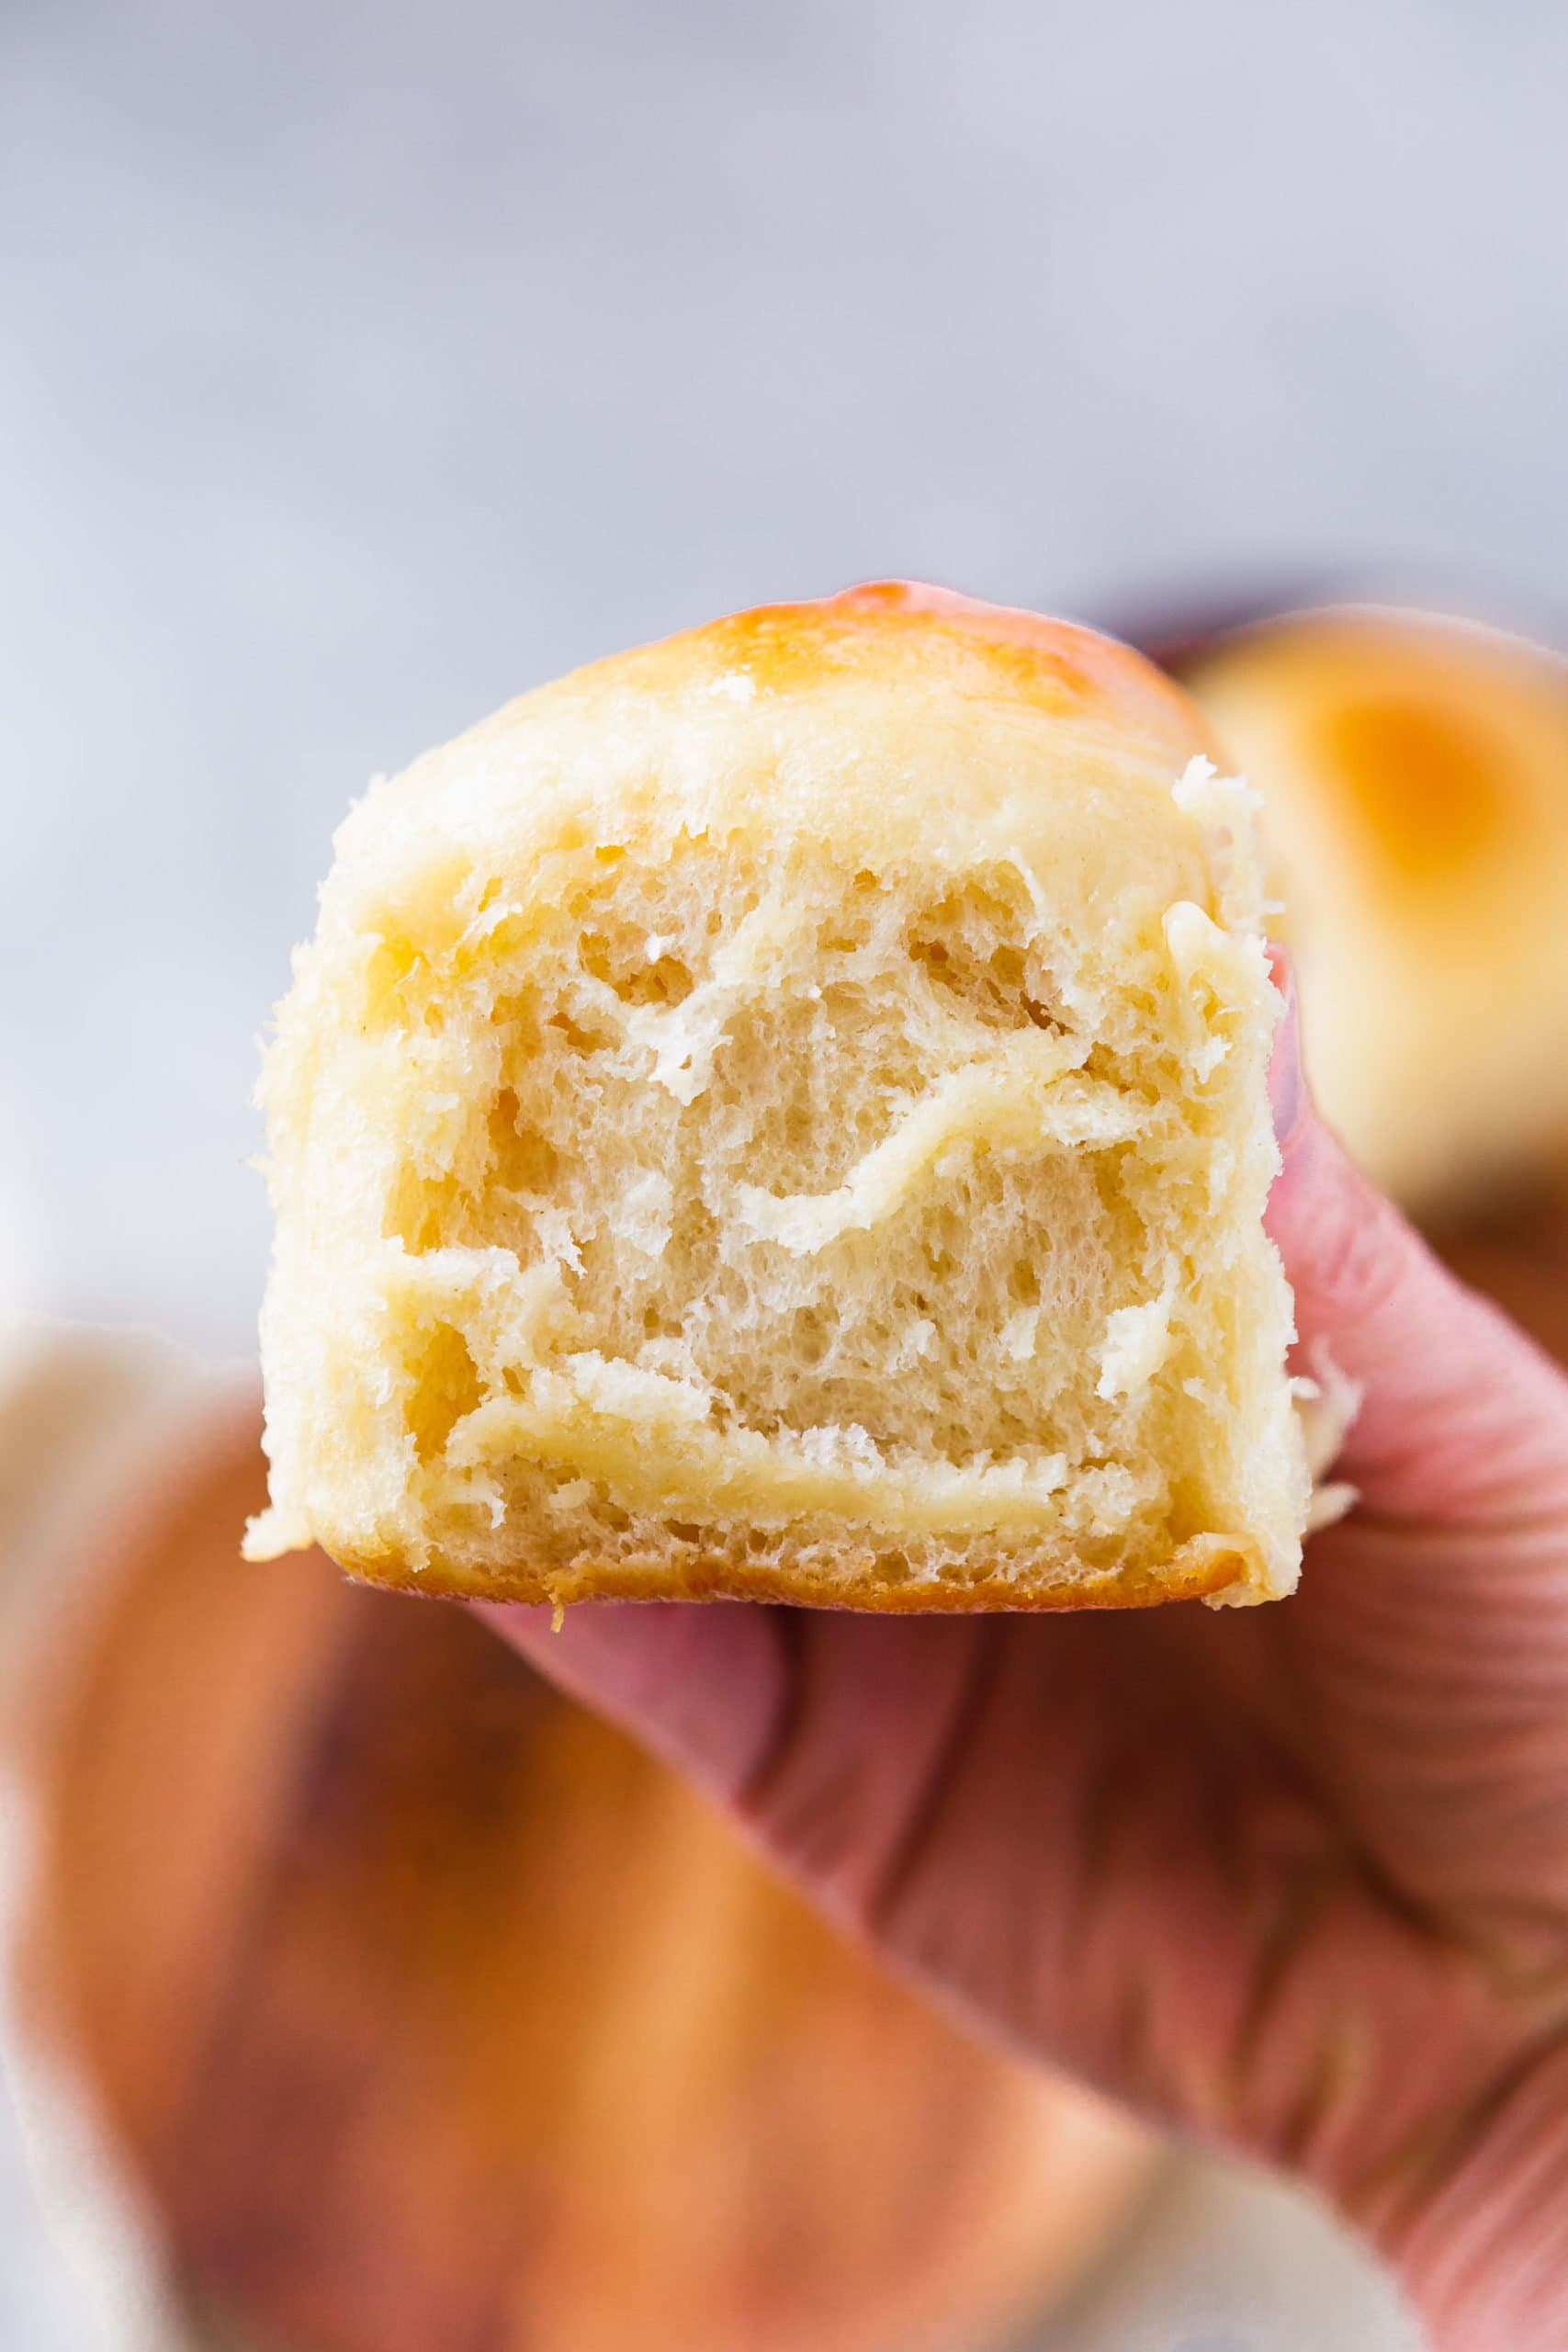 Picture of a person holding a Hawaiian fluffy roll.